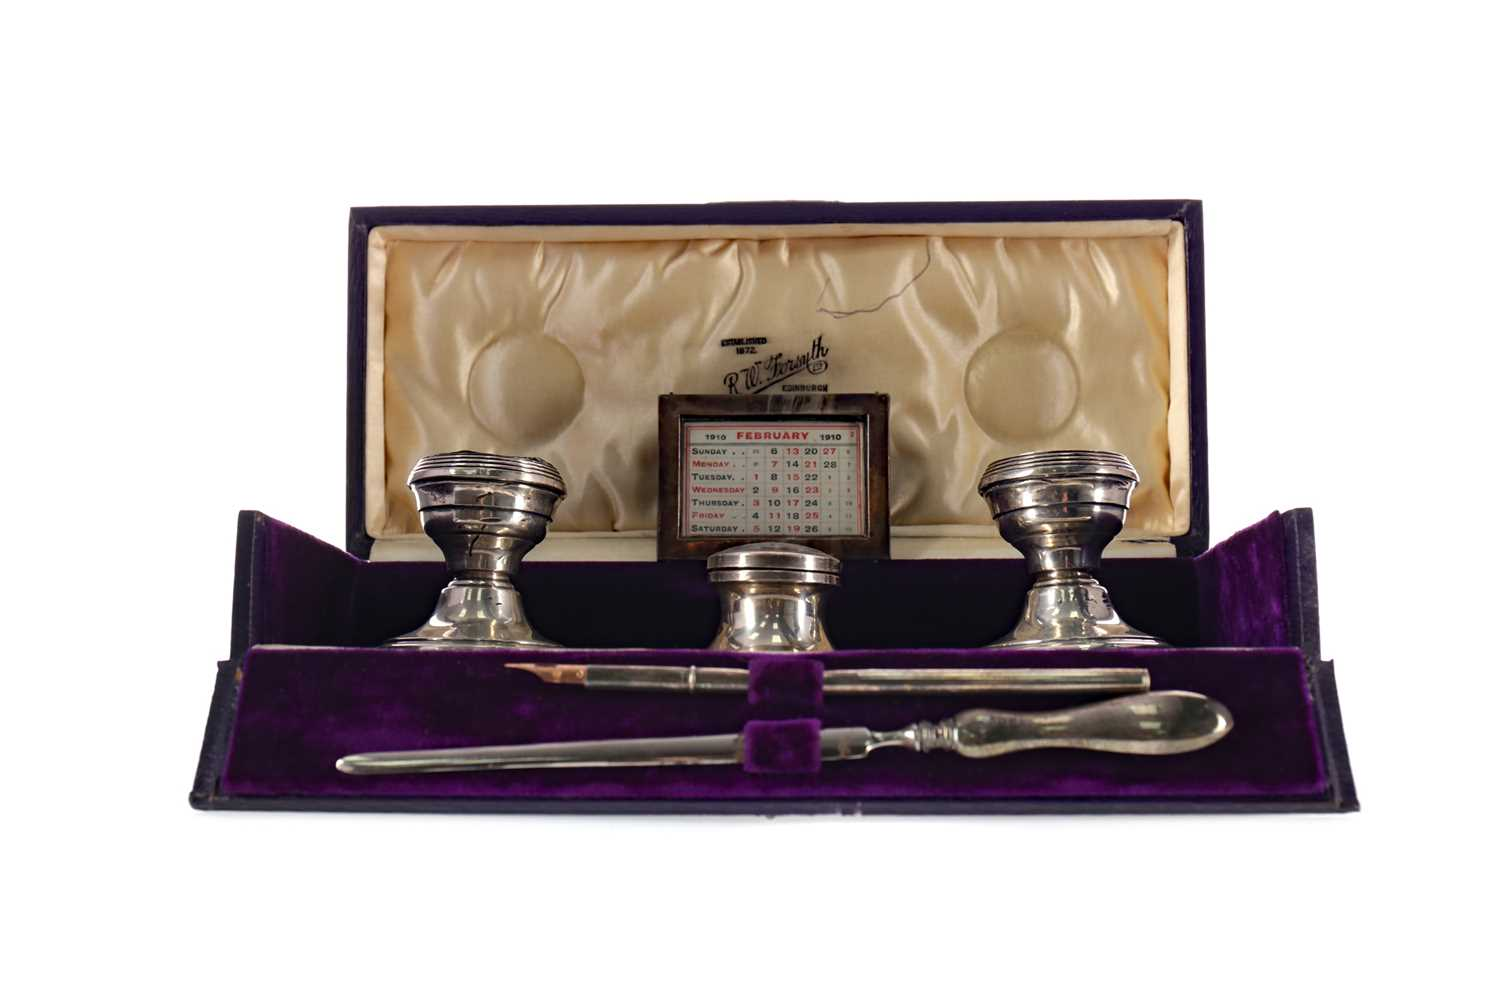 Lot 413 - AN EARLY 20TH CENTURY SILVER DESK SET IN A FITTED CASE